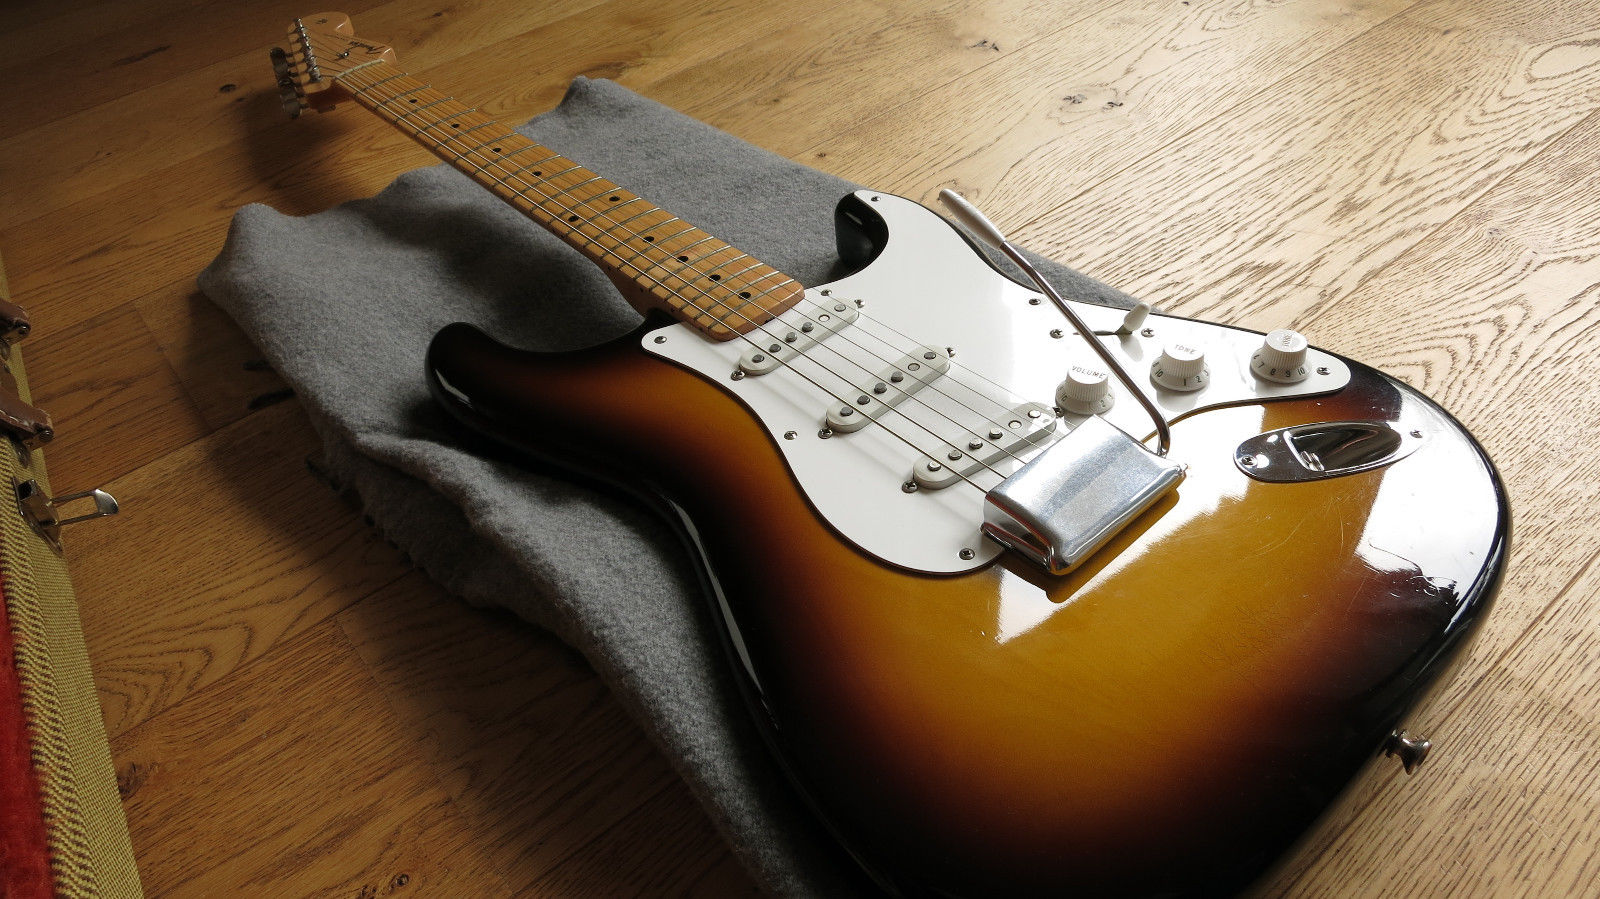 Old Fender Stratocaster 1280x960 Wallpaper Pictures 1600x899